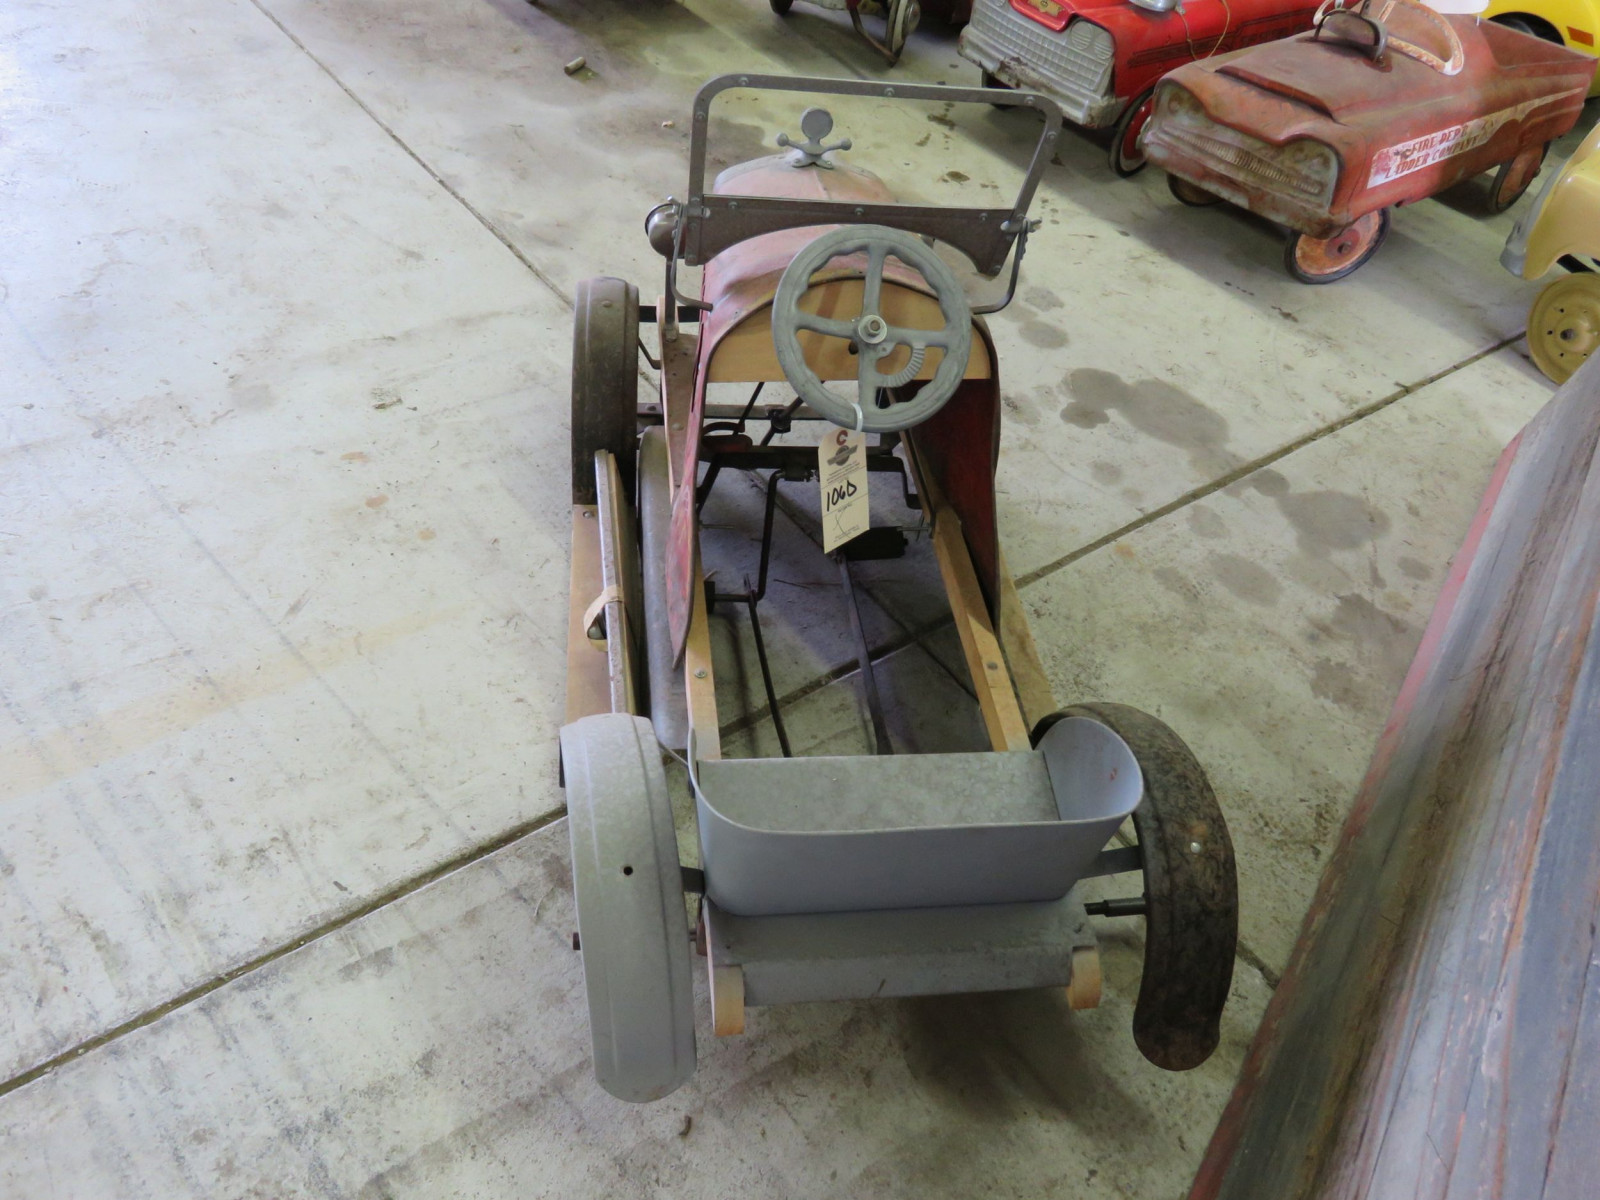 Rare SteelCraft Fire chief Pedal Car Project - Image 4